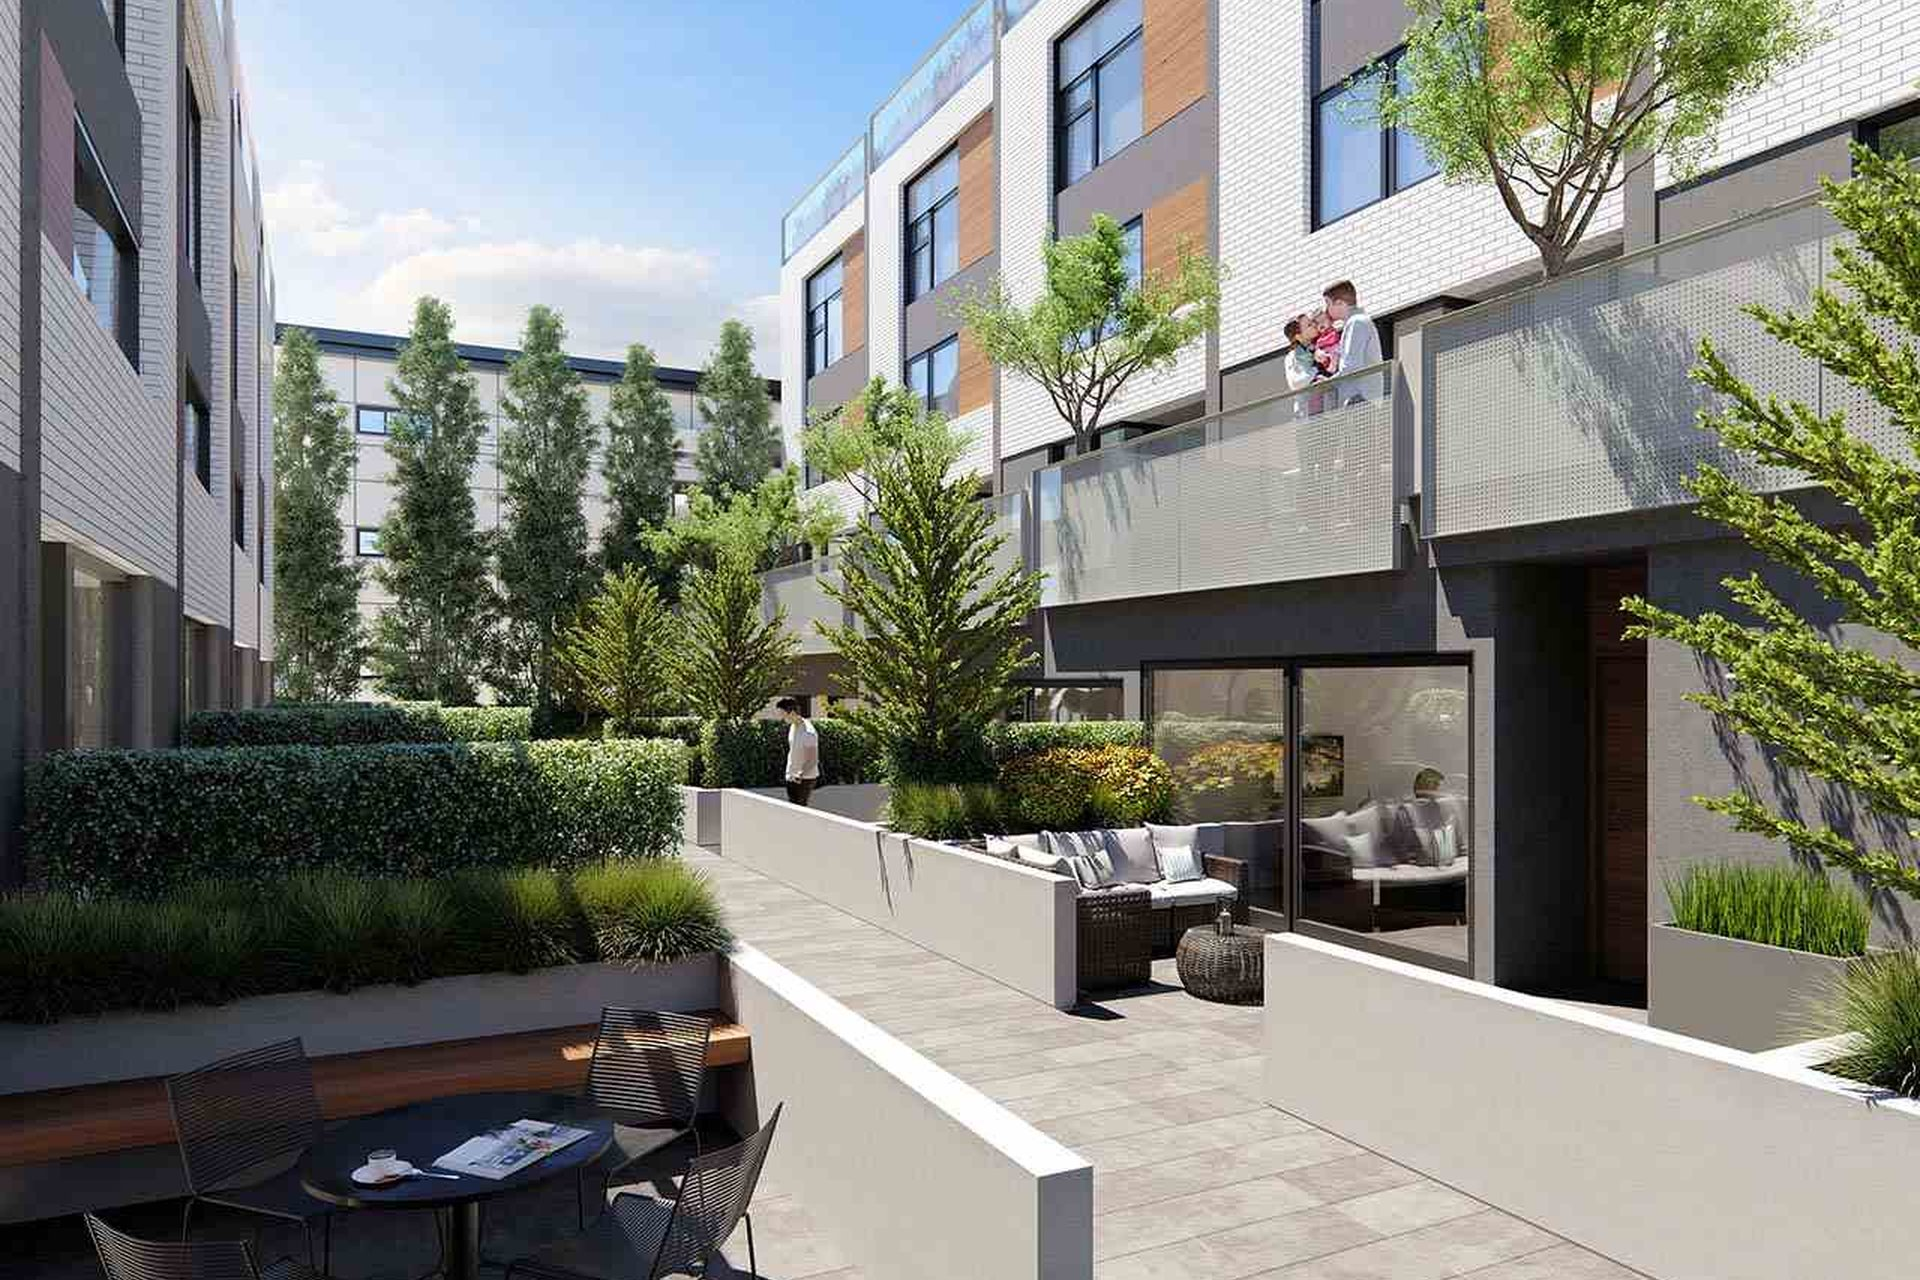 TH E4 - 649 East 3rd Street - The Morrison Townhomes